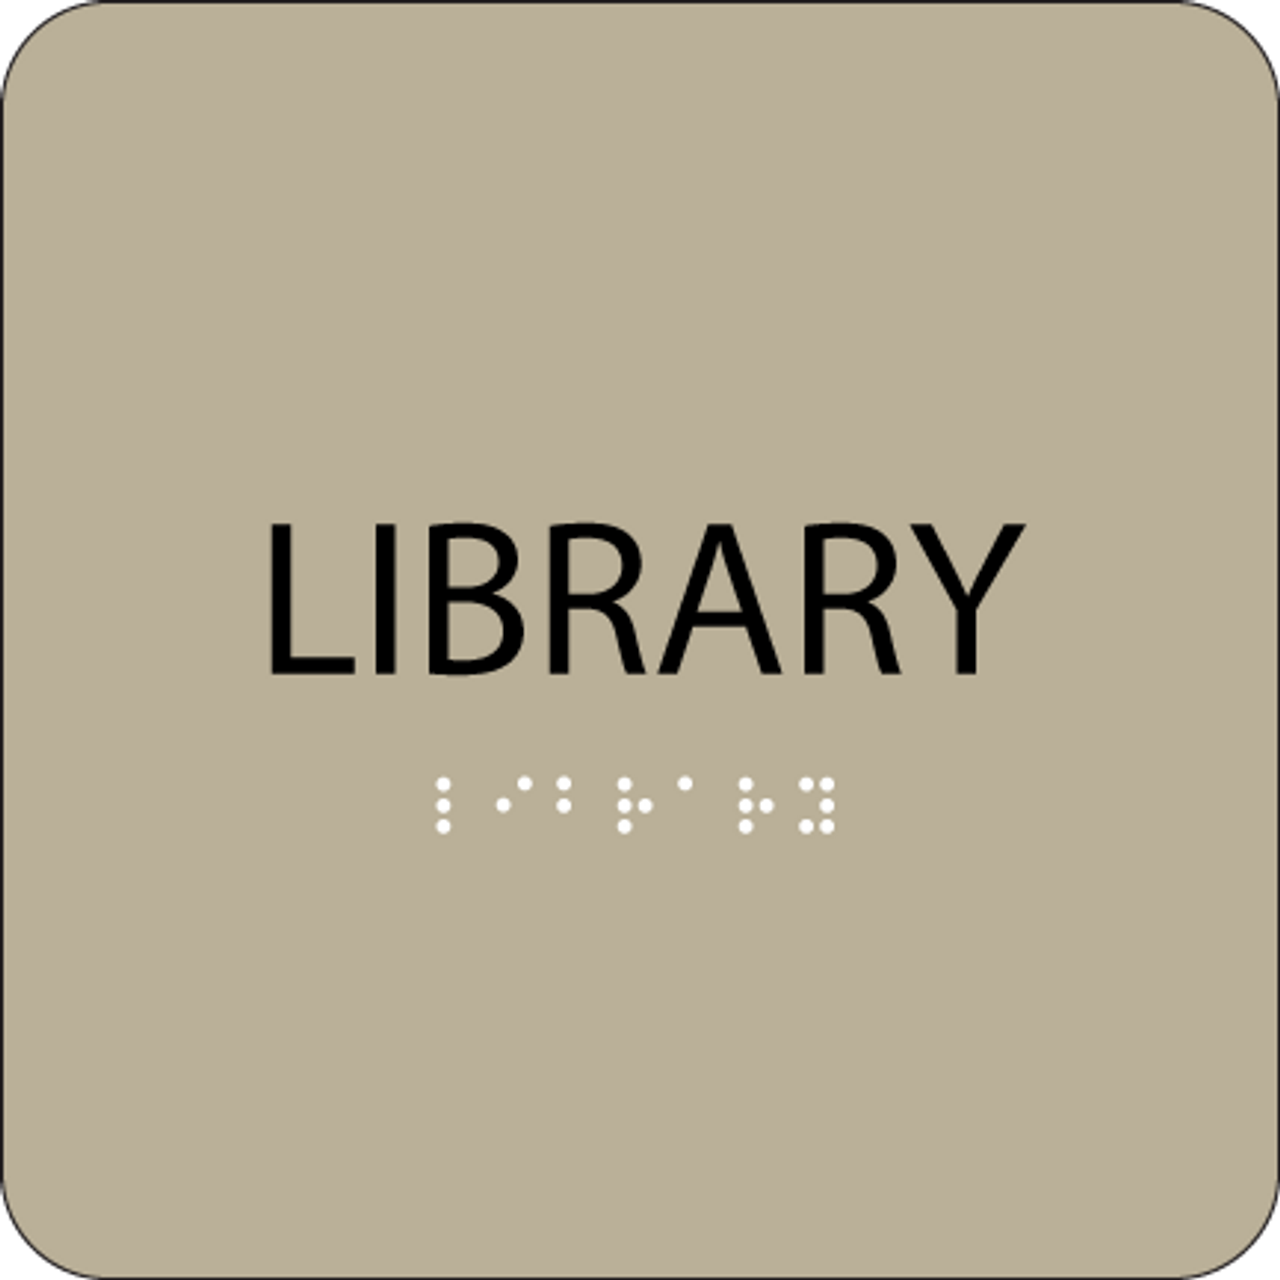 Brown Library Braille Sign